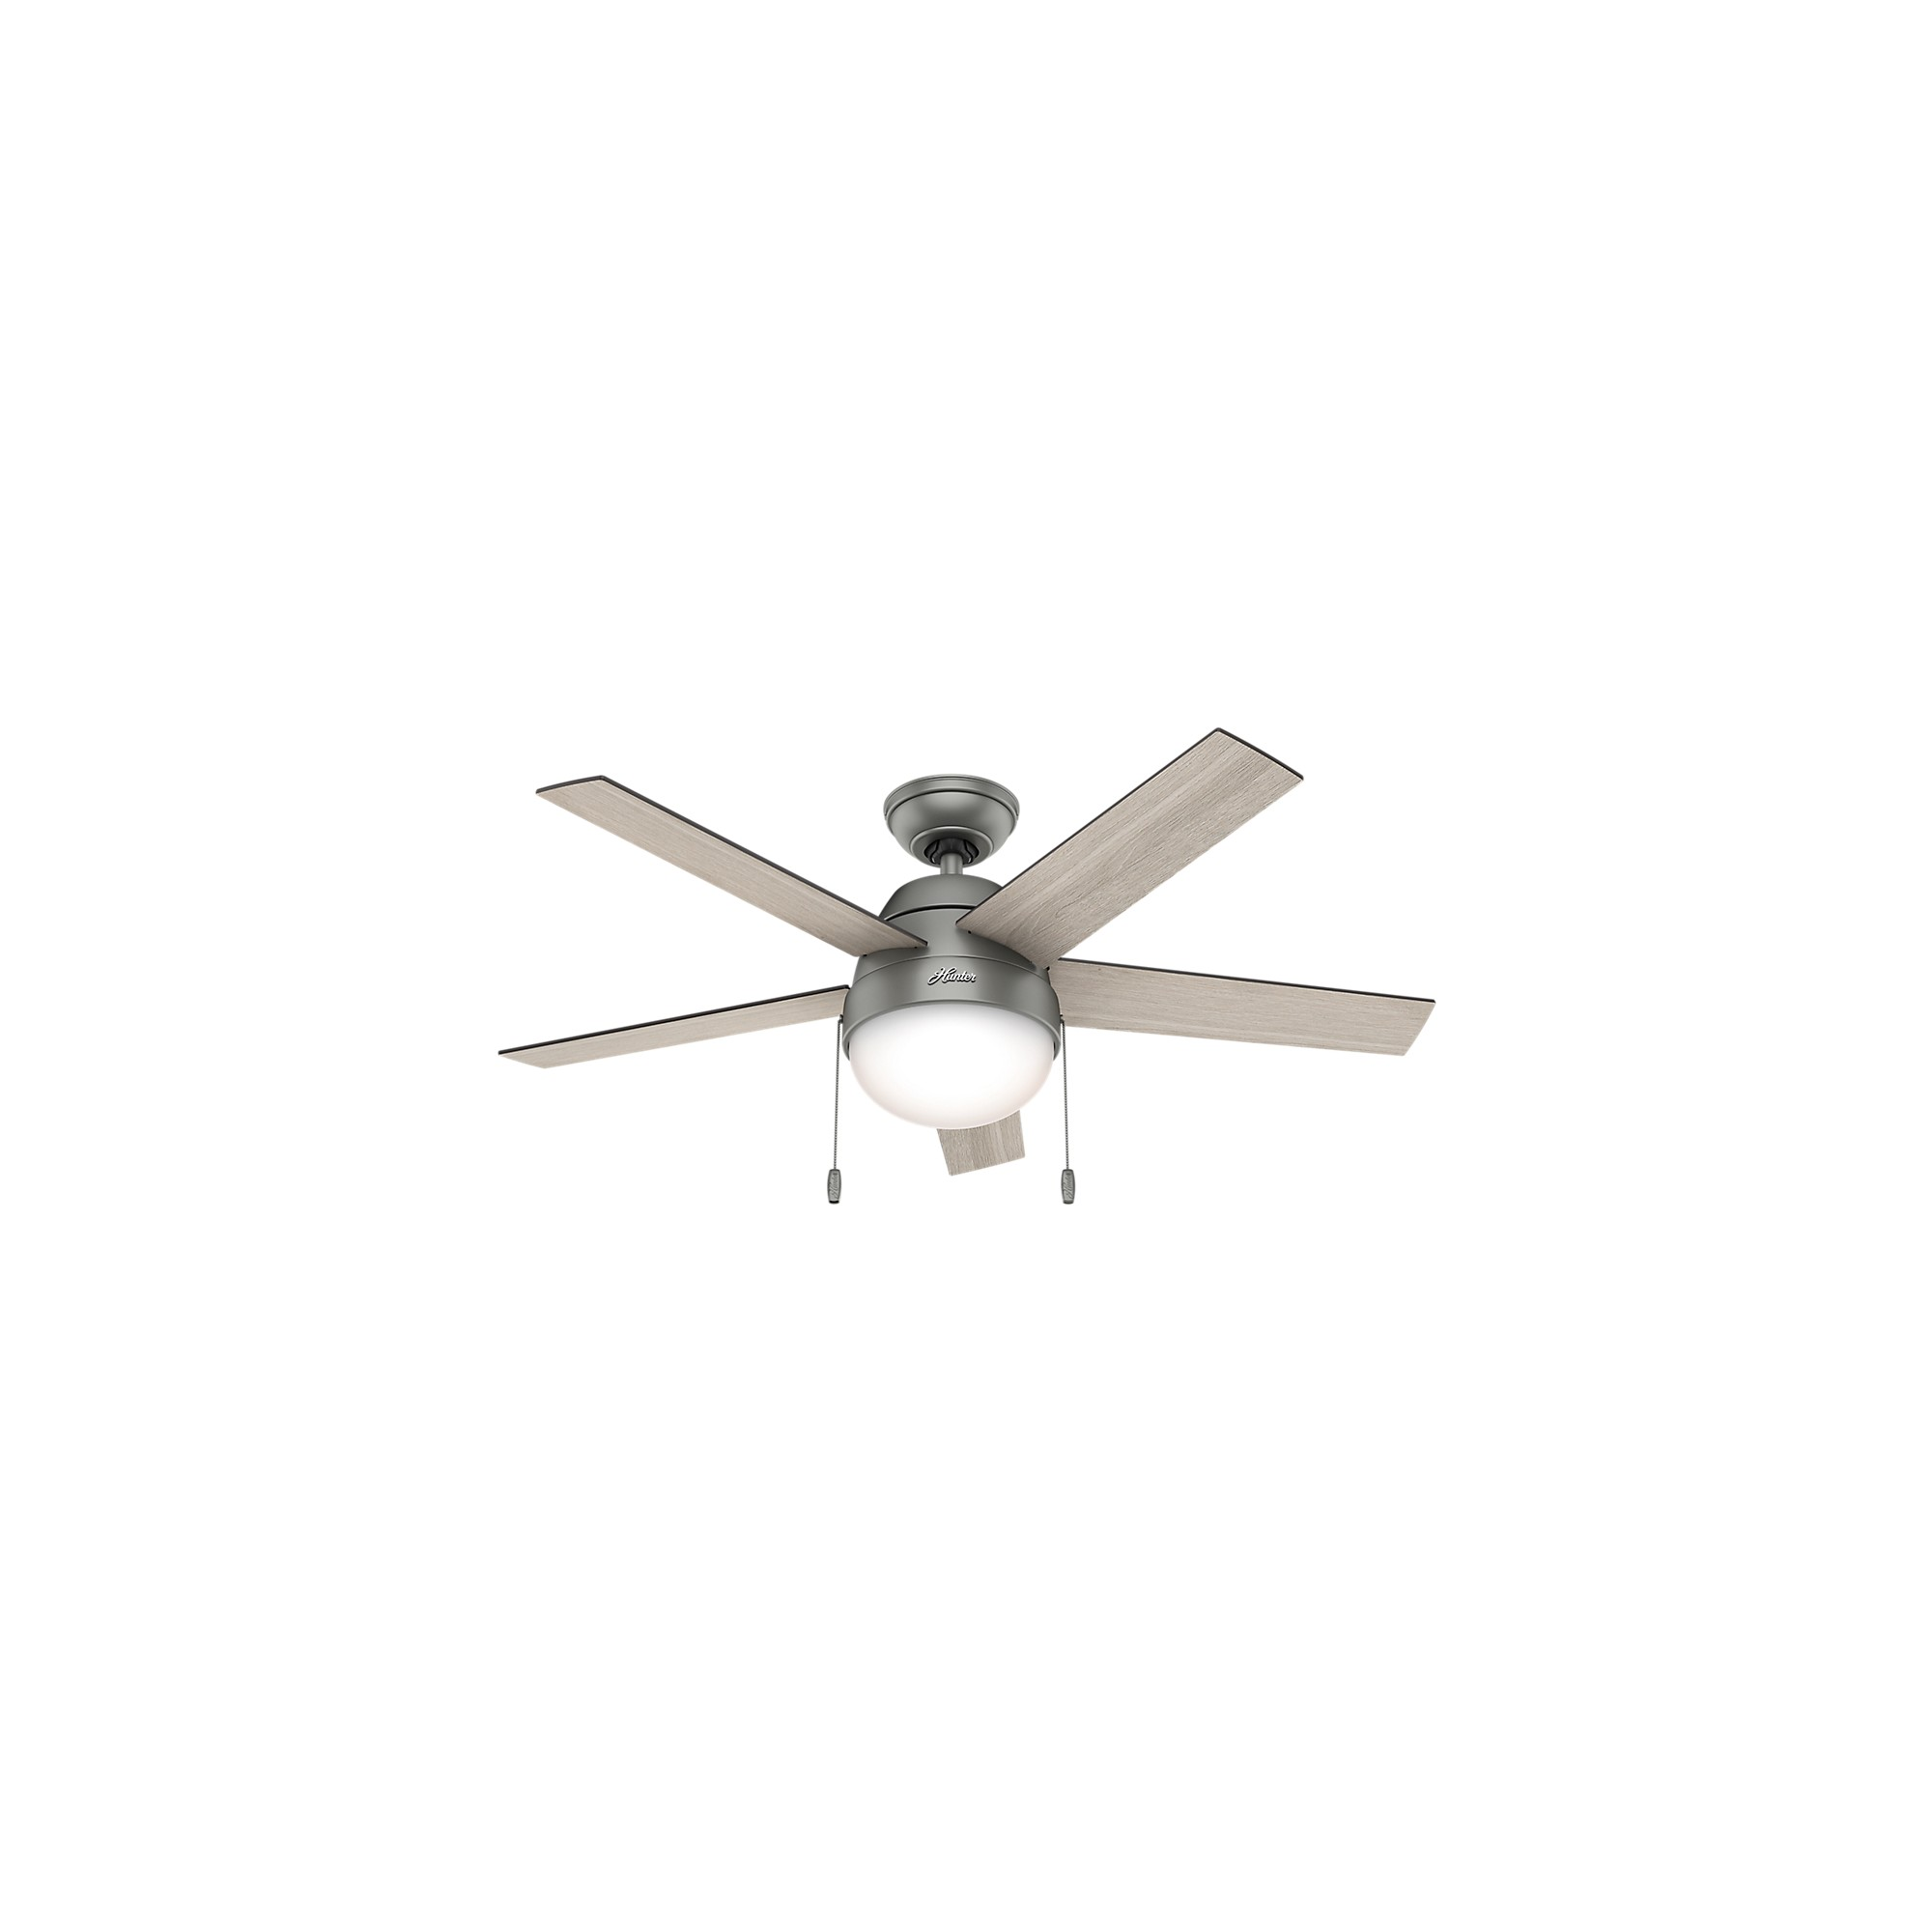 Hunter Fan 14 X 24 X 10 Inch Brushed Nickel Chrome Lighted Ceiling